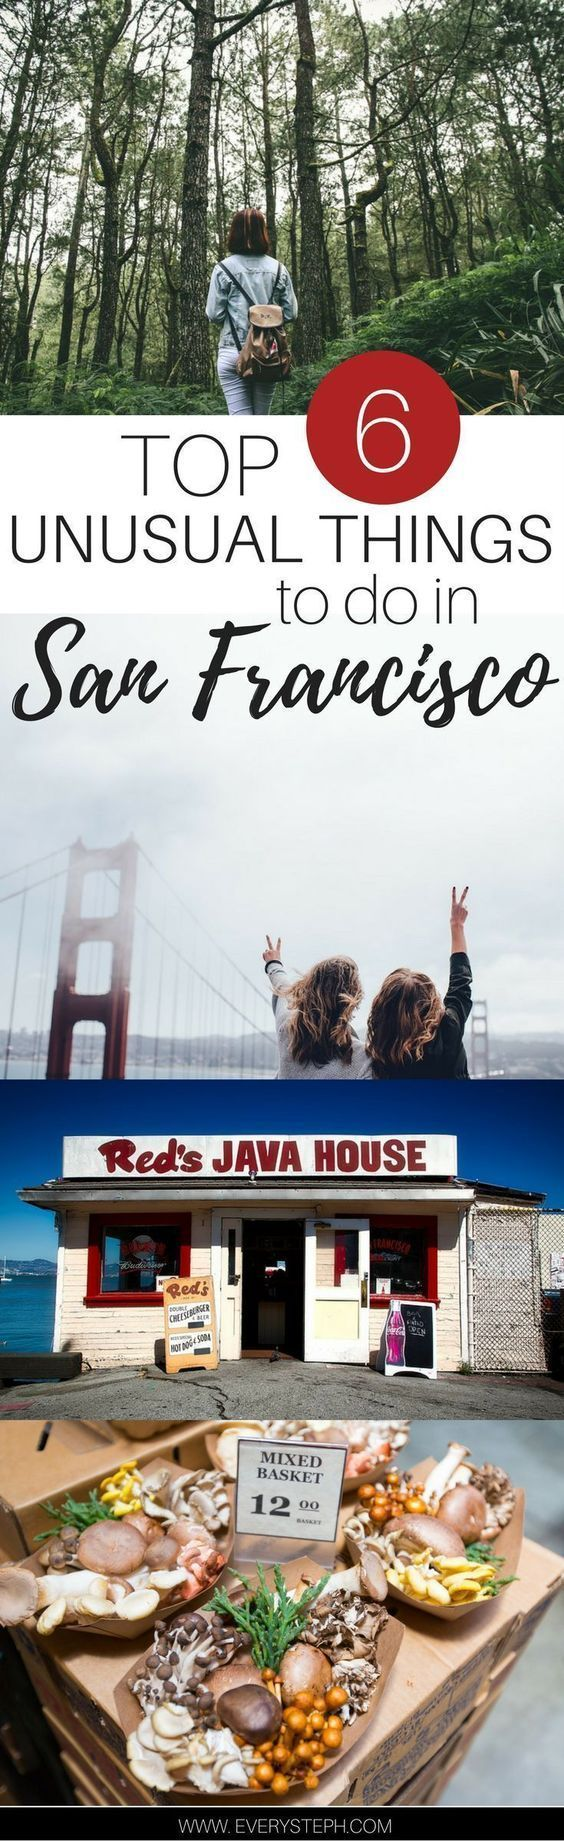 A Different San Francisco 6 Things to